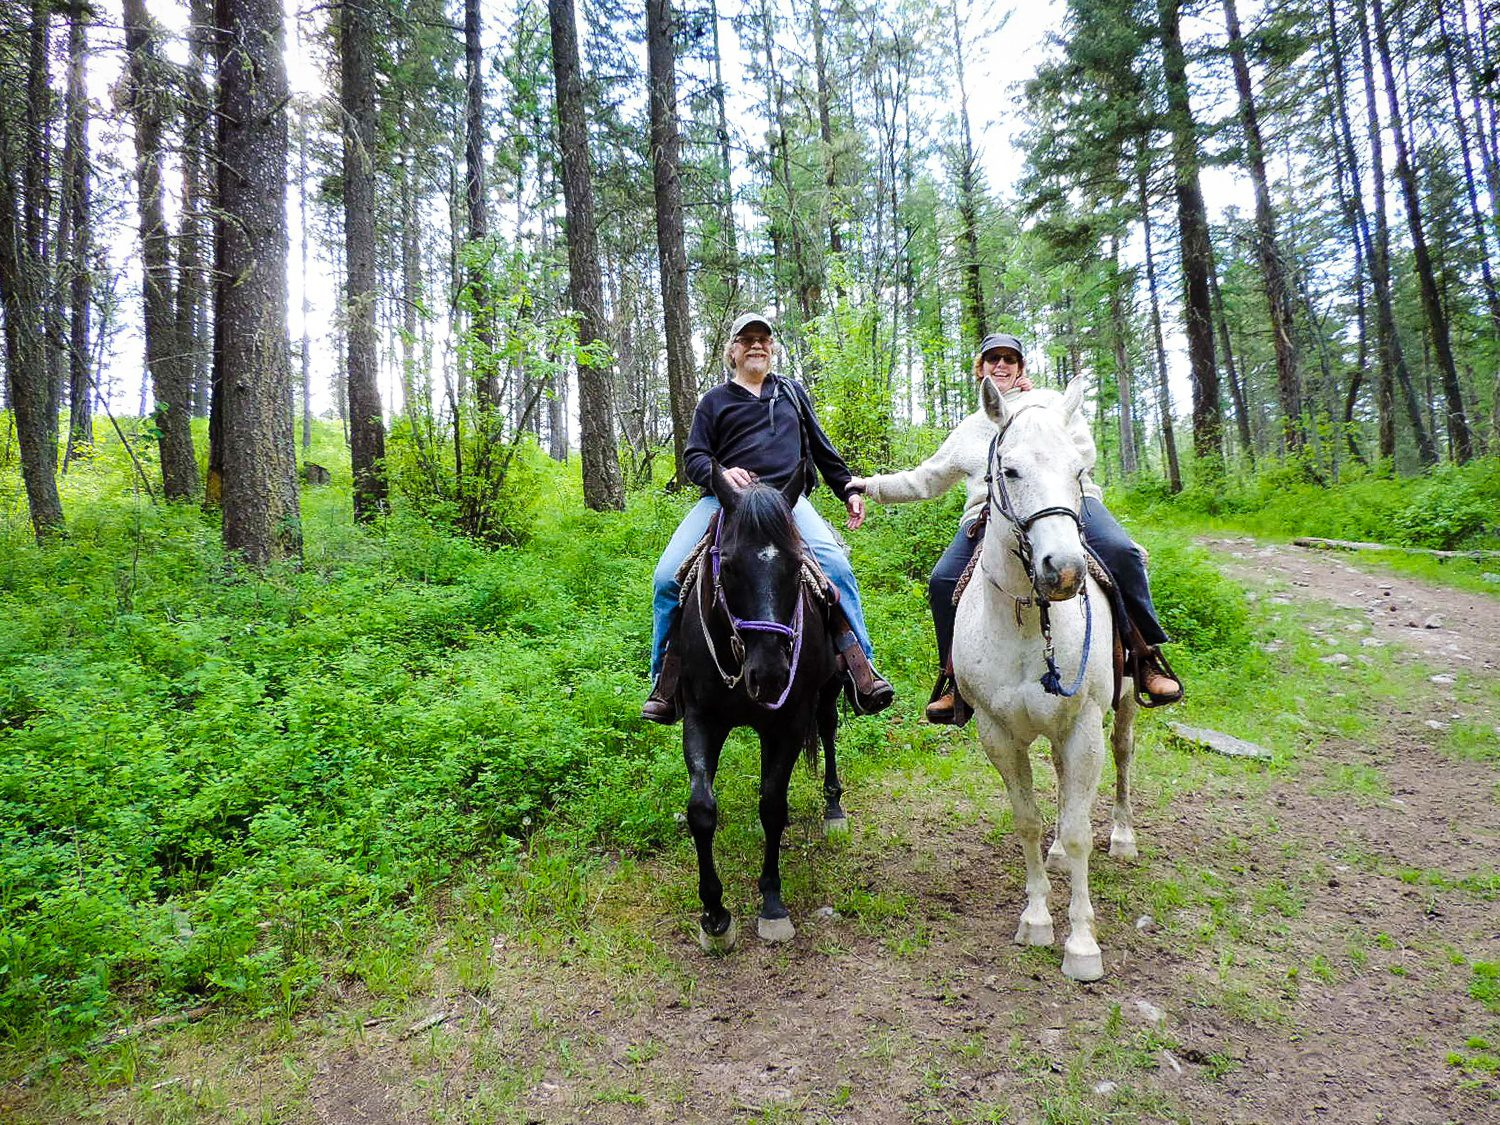 A horseback ride through the woods in Montana.